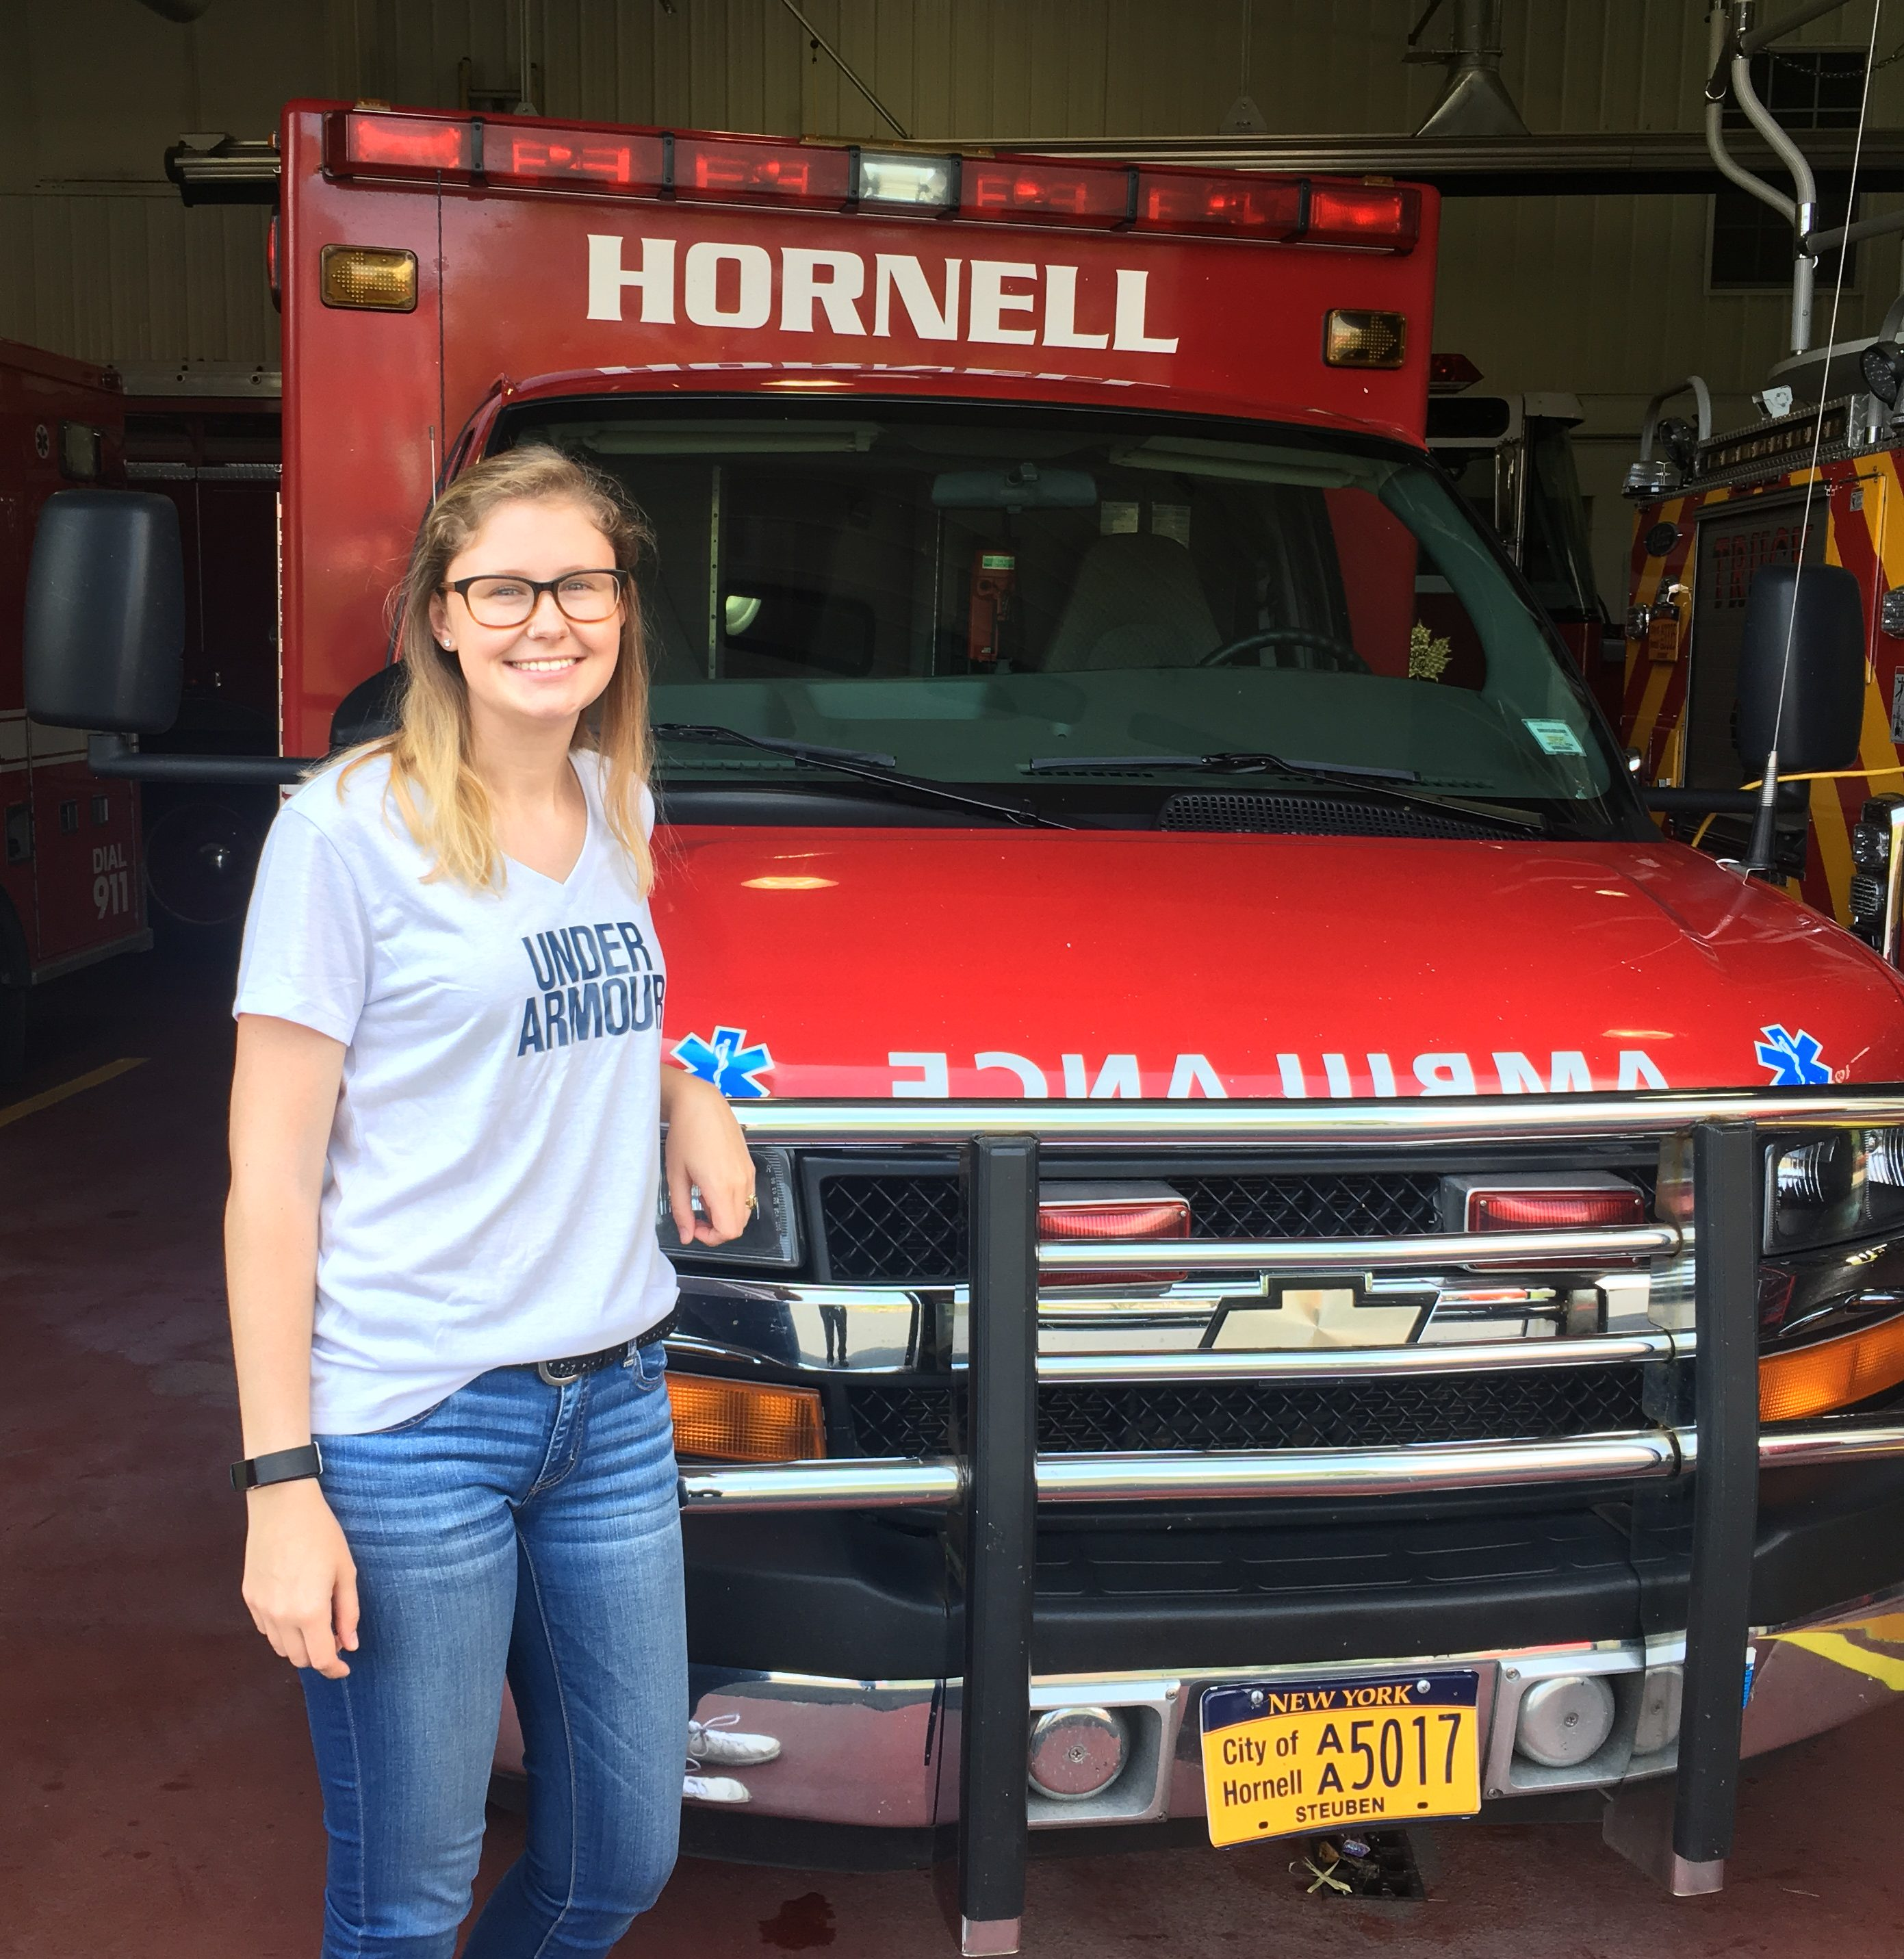 Danika Connors at the fire department in Hornell, New York. Photo courtesy of Danika Connors.